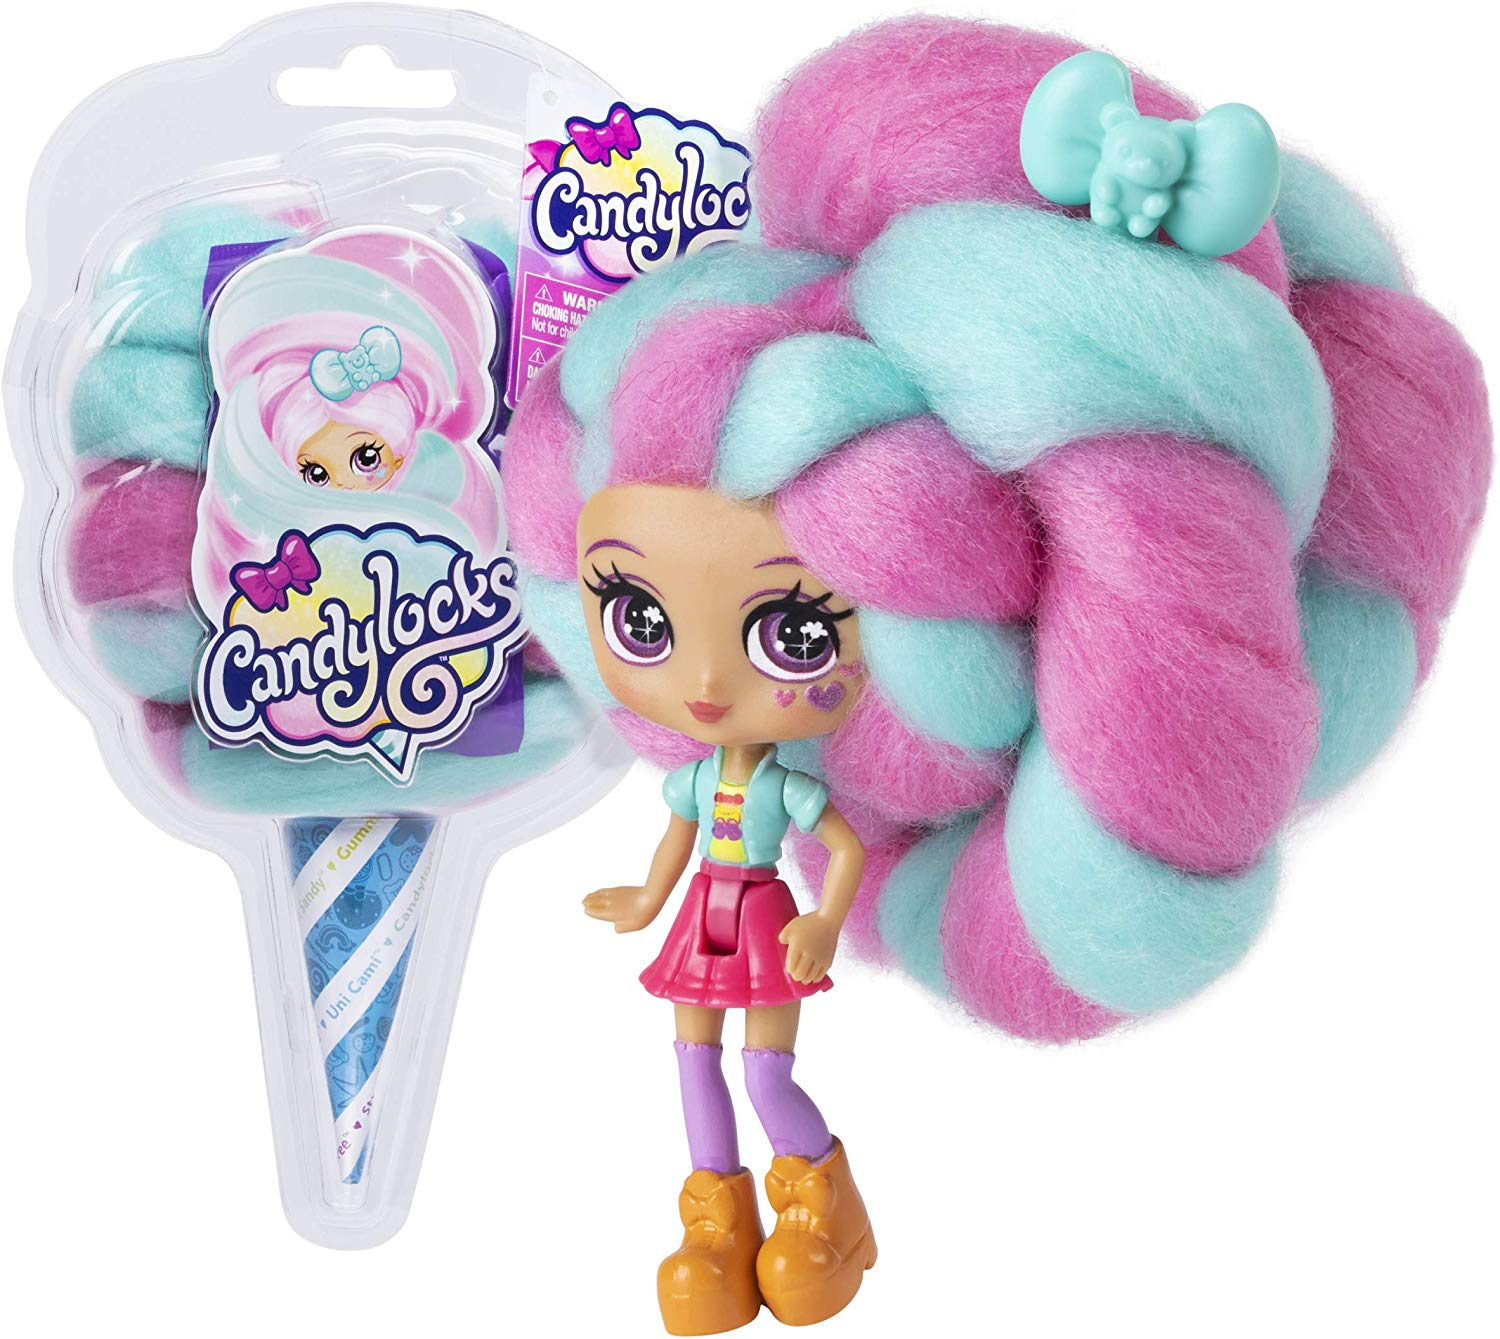 Candylocks Cotton Candy Hair Doll Toy For Girl Color DIY Scented Surprise Doll With Accessories LOL Hairstyle Collection Gift